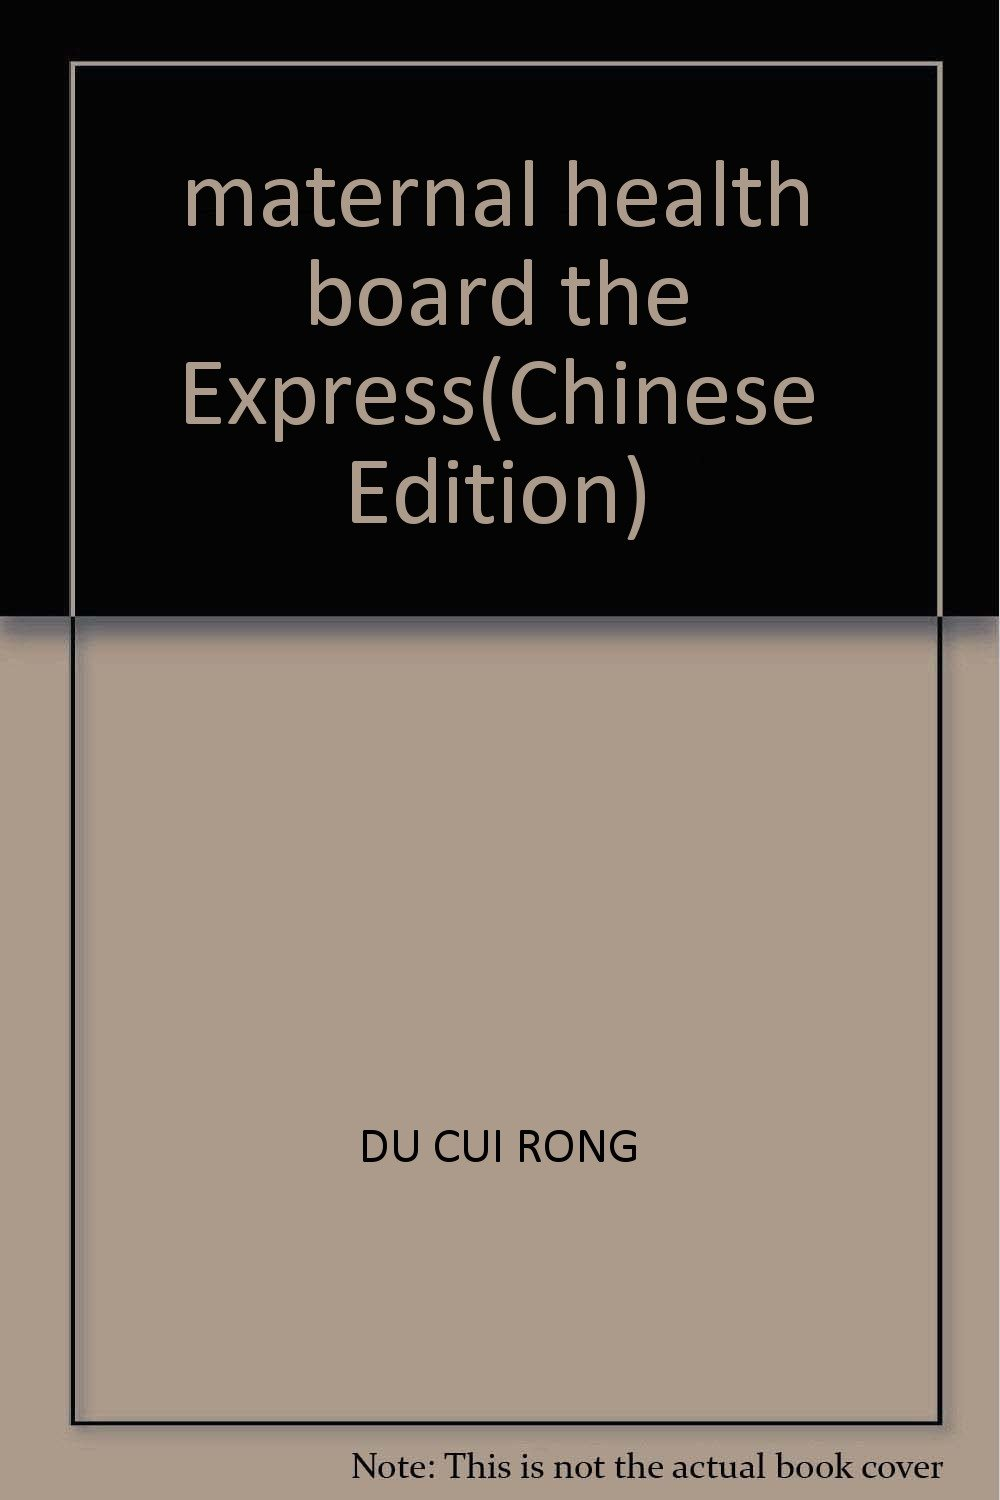 Download maternal health board the Express(Chinese Edition) pdf epub